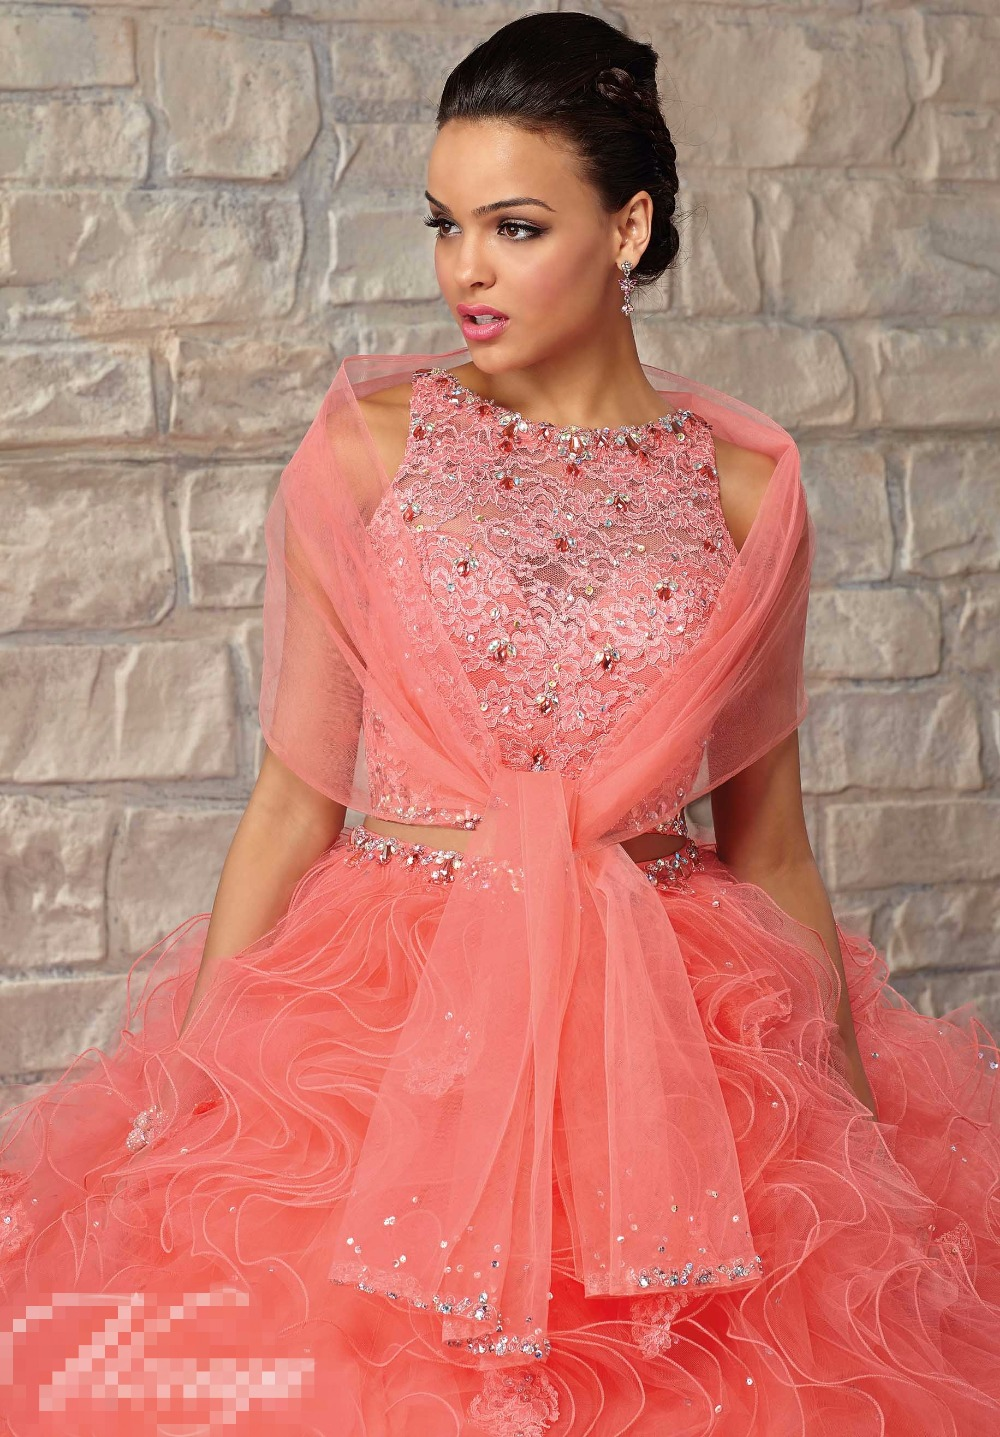 Coral 2 Two Pieces Quinceanera Dresses 2016 Ruffles Organza With ...